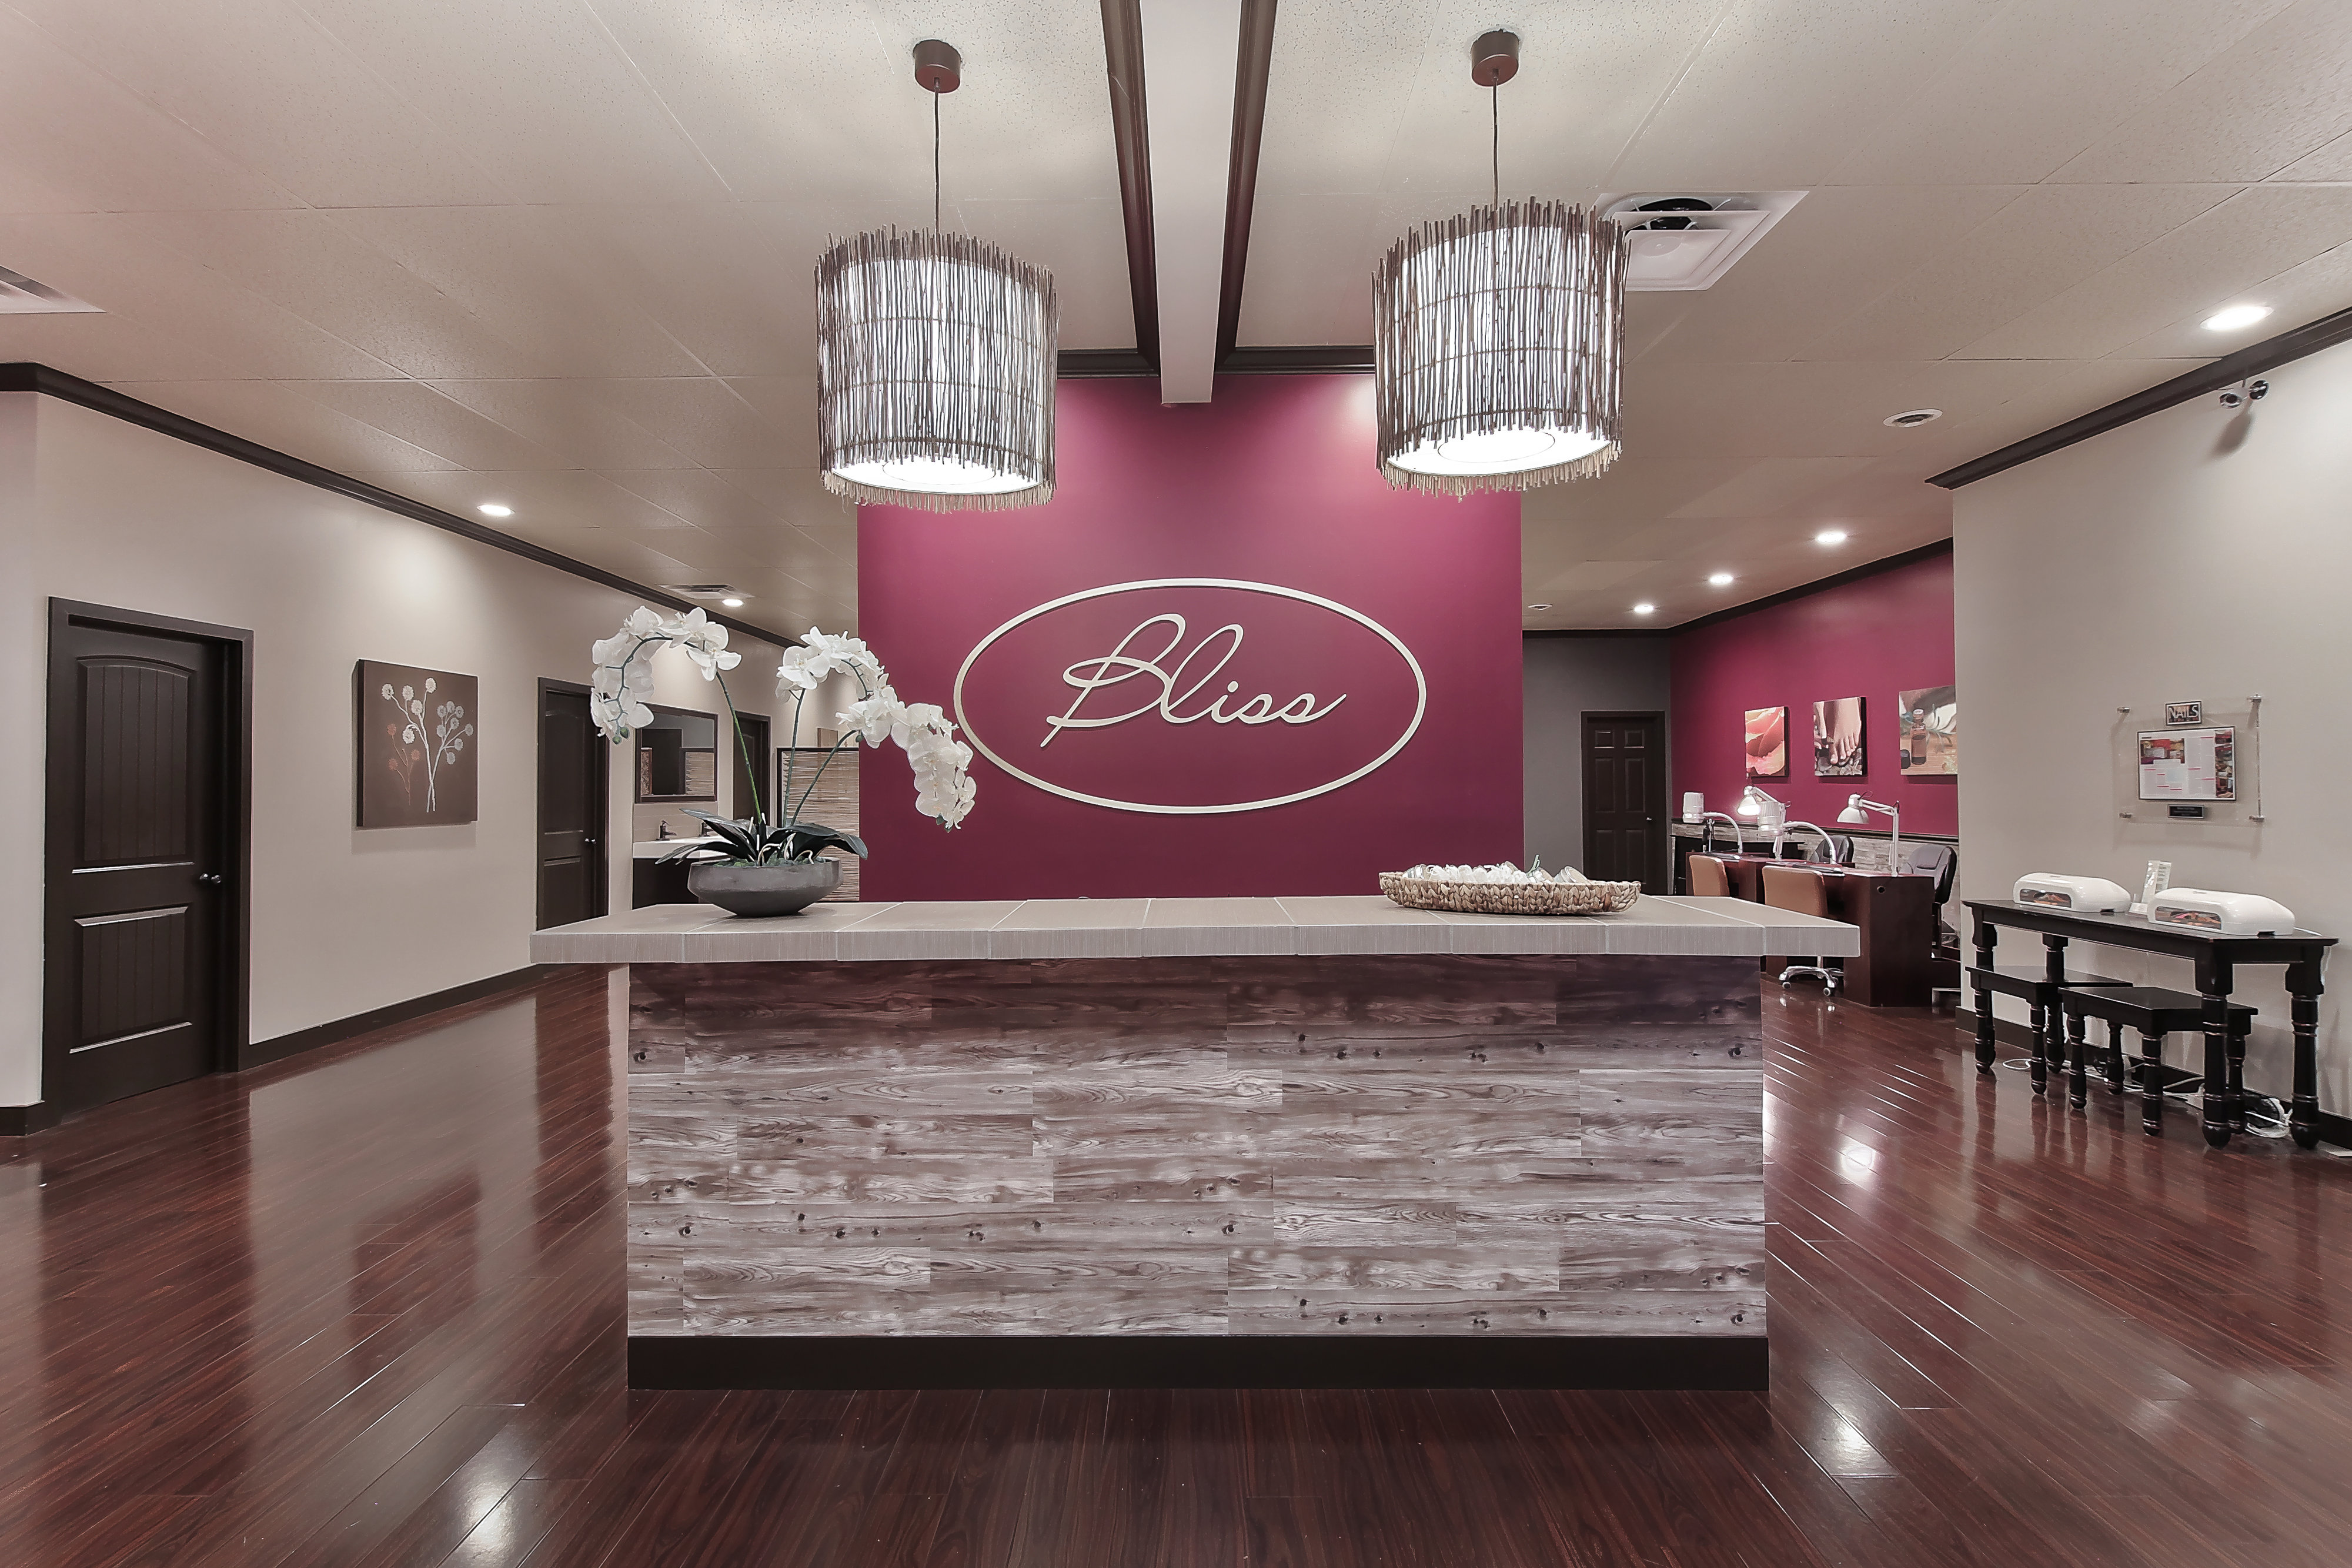 Bliss Spa Dc Hours